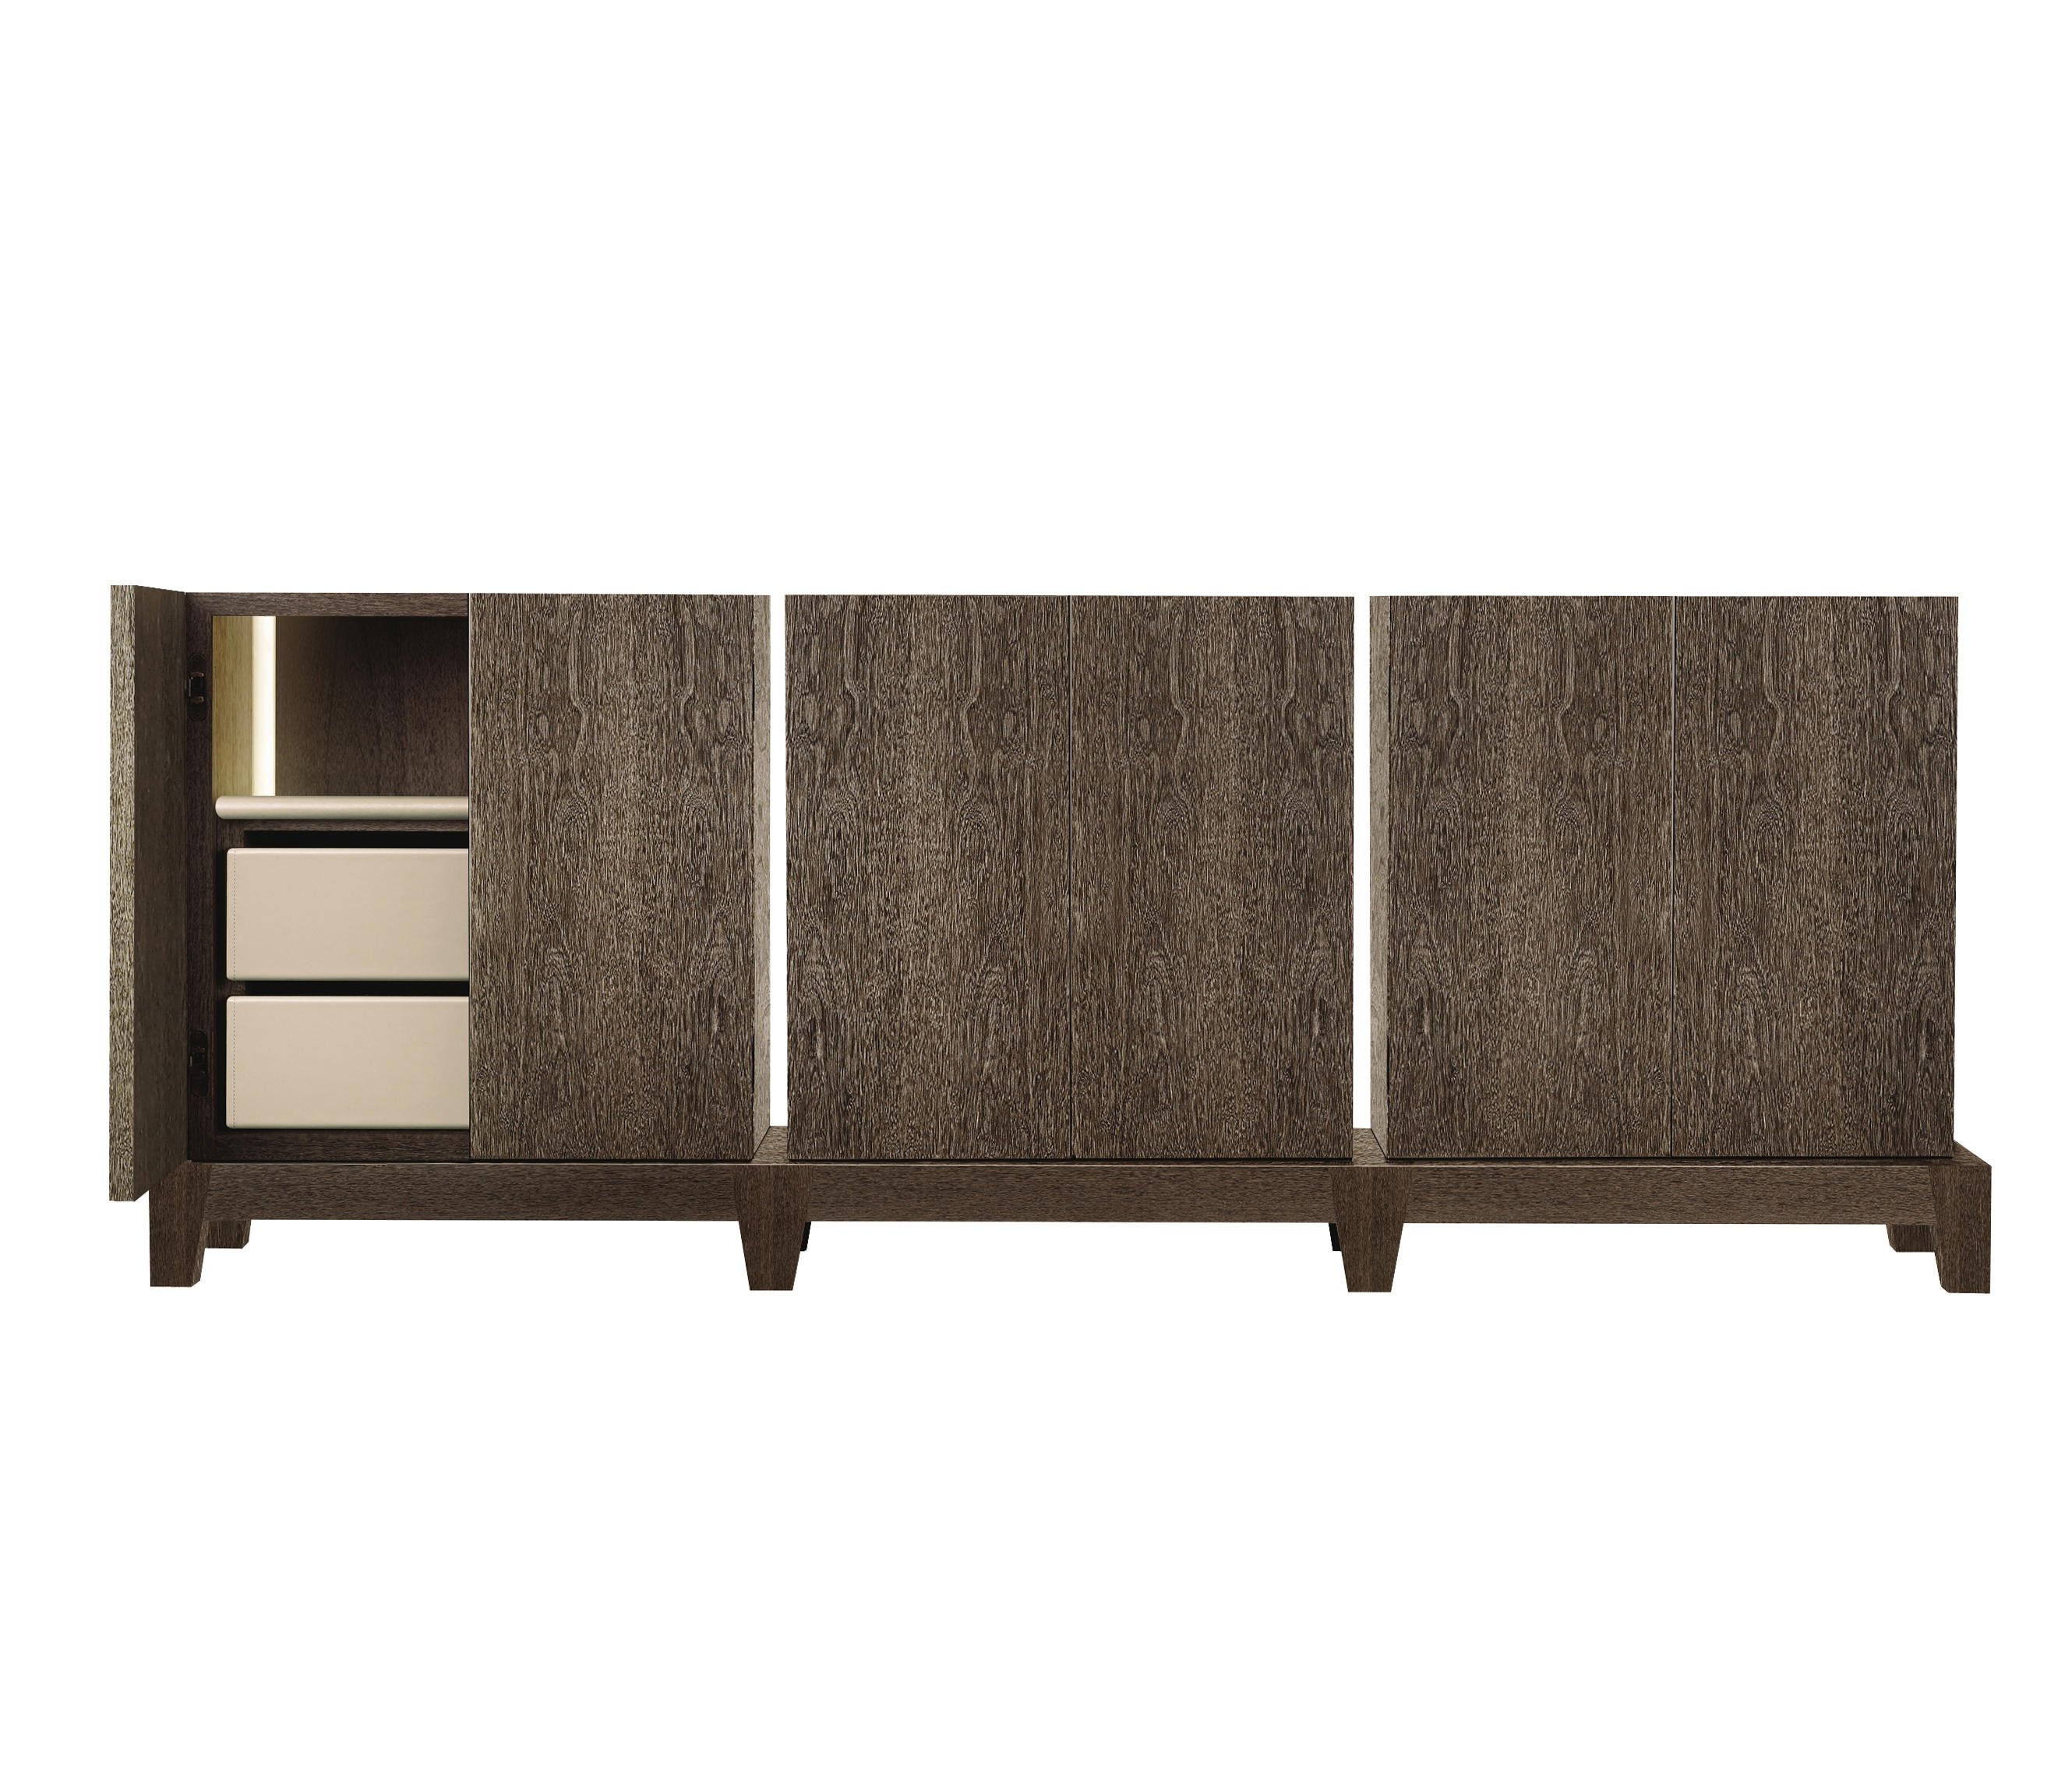 Amarcord Cabinet - Sideboards From Promemoria | Architonic with Iron Sideboards (Image 2 of 30)